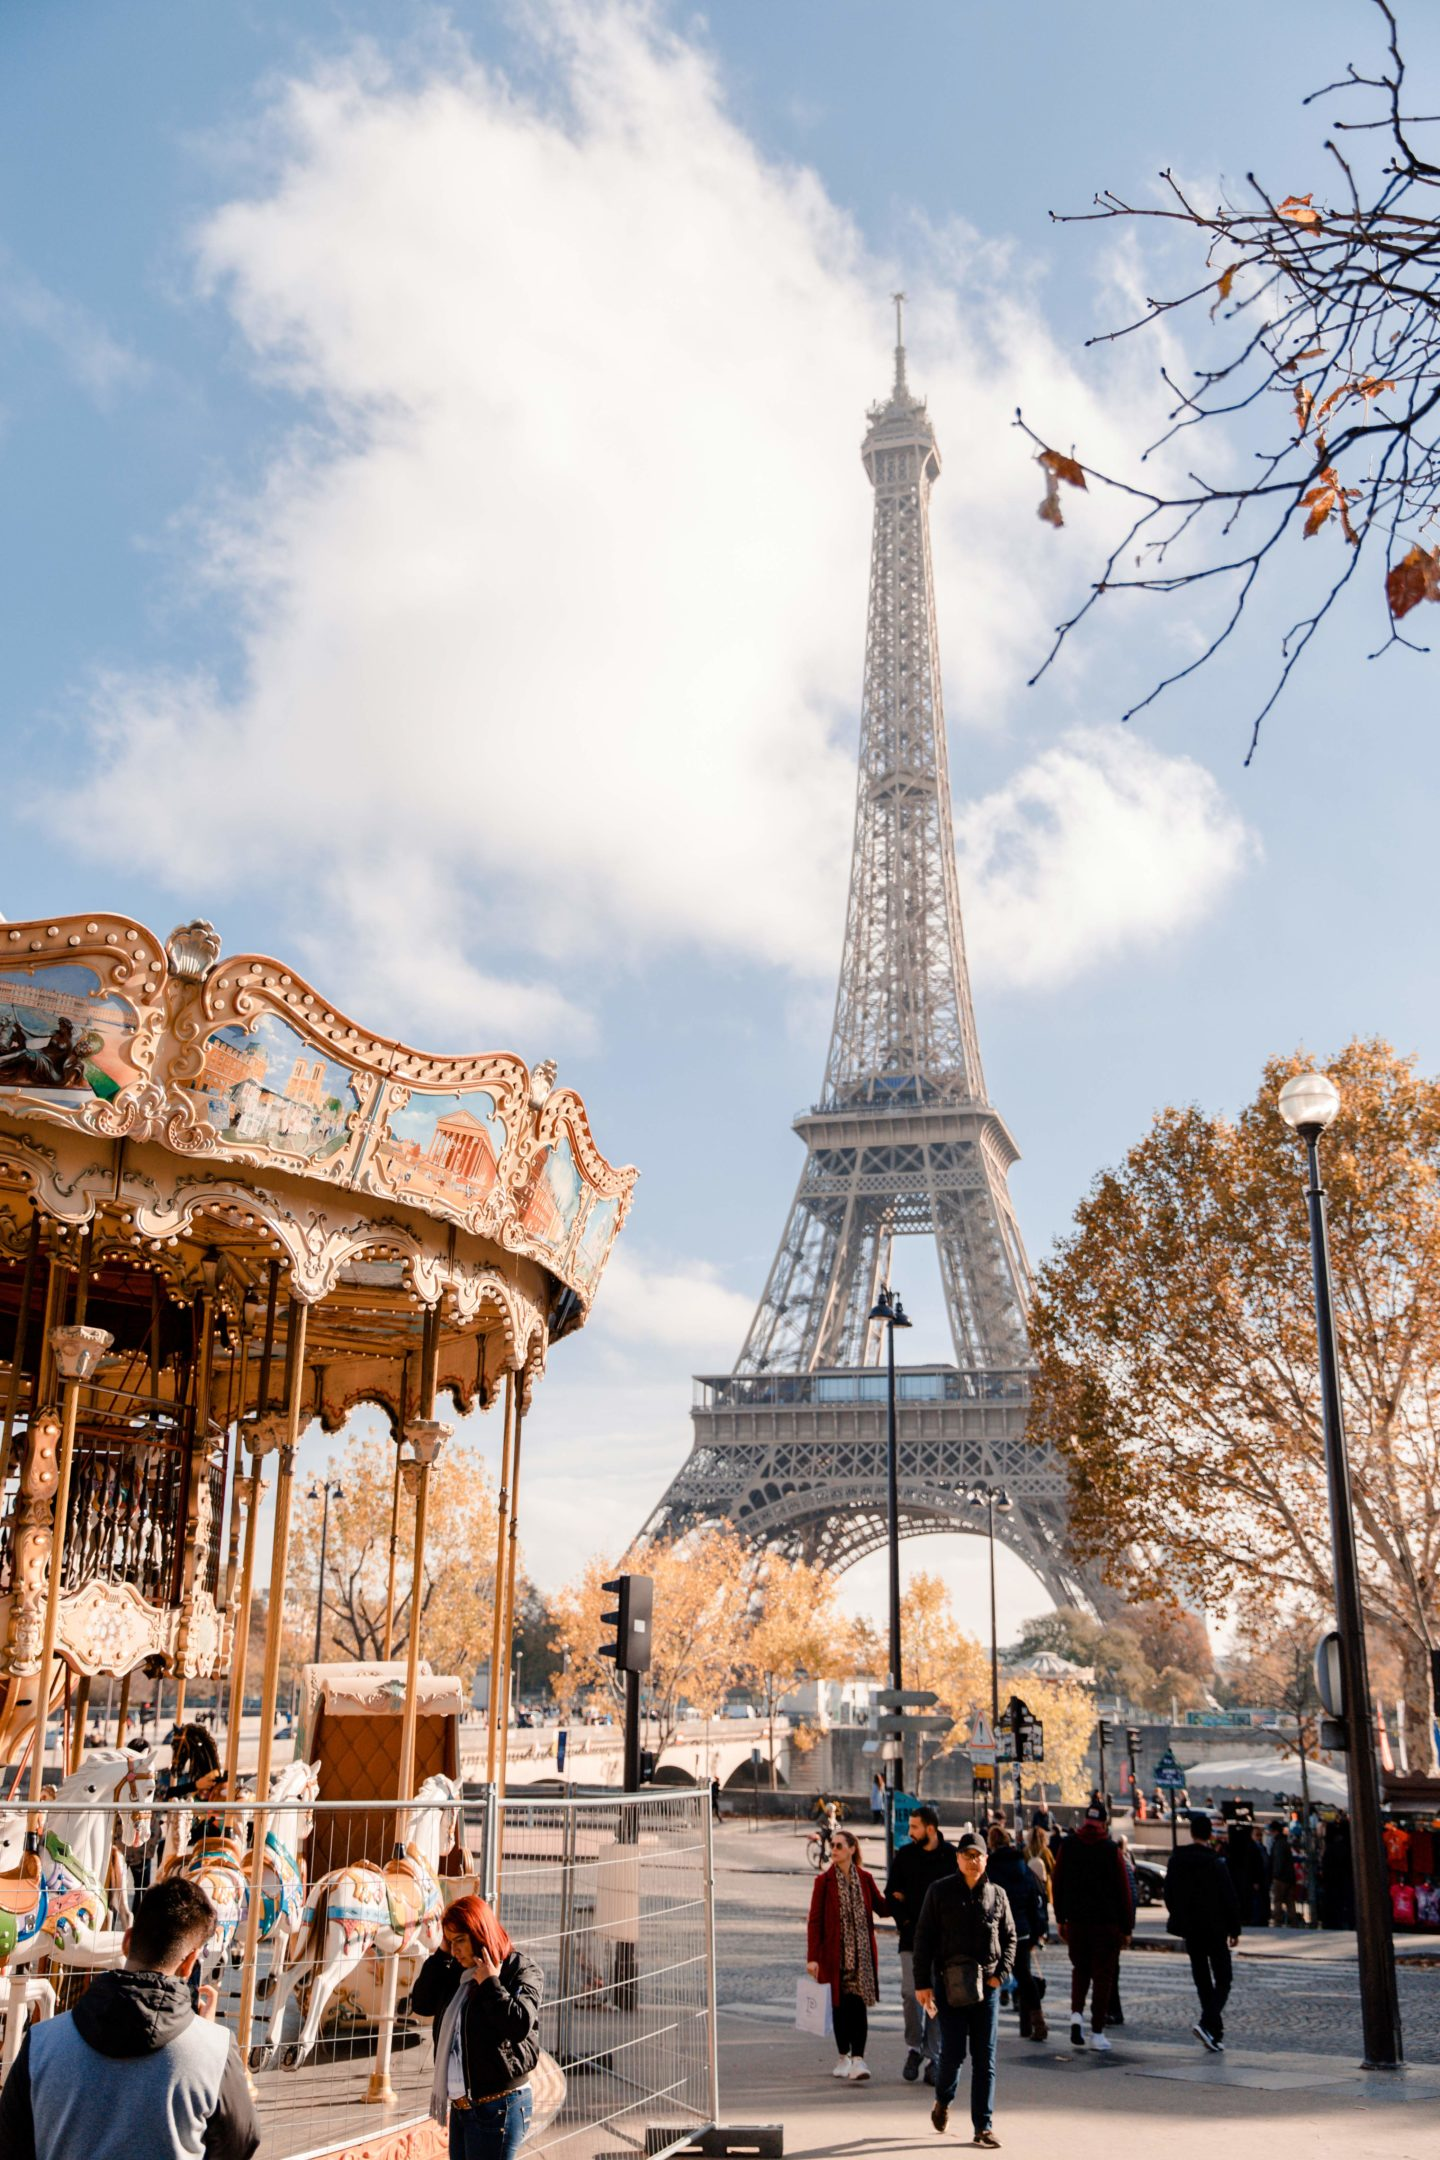 Blogger's travel guide to Paris | Top things to do and see in Paris France | Paris Photography Inspiration | Dana Berez Travel Guide Eiffel Tower Photography